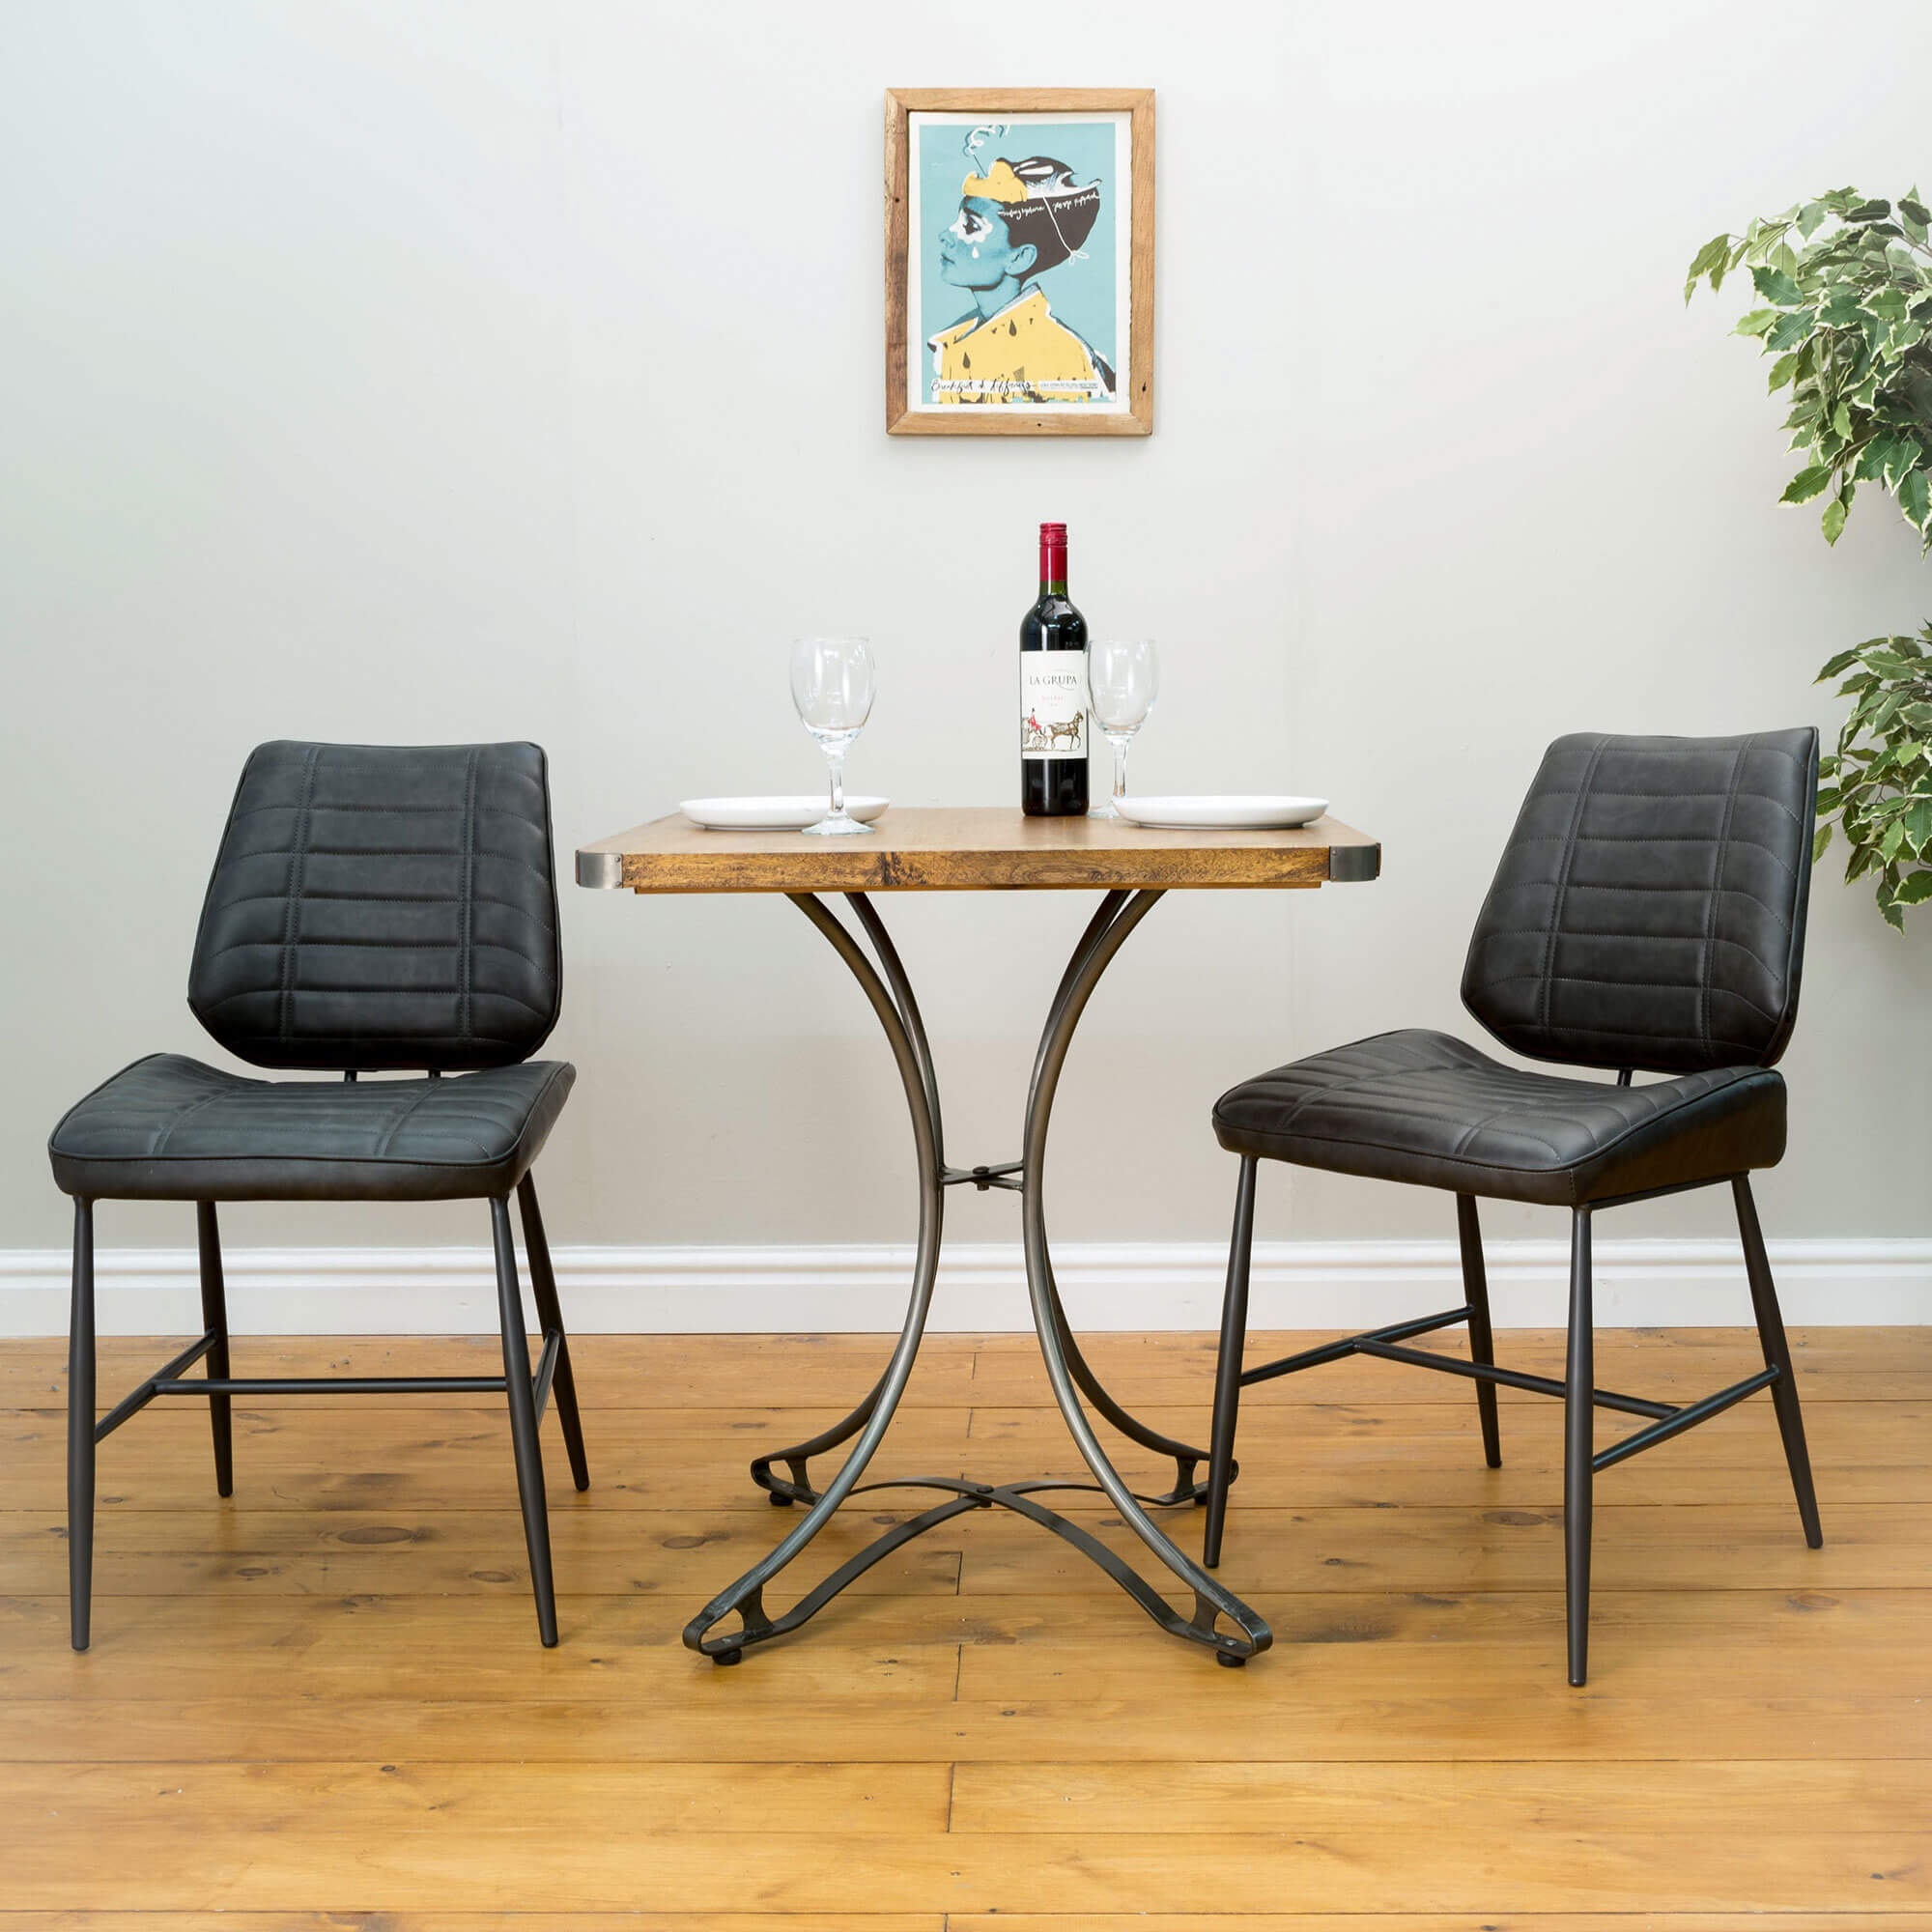 Urban Square Cafe Table x2 Chairs (70x70) | Solid Wood |